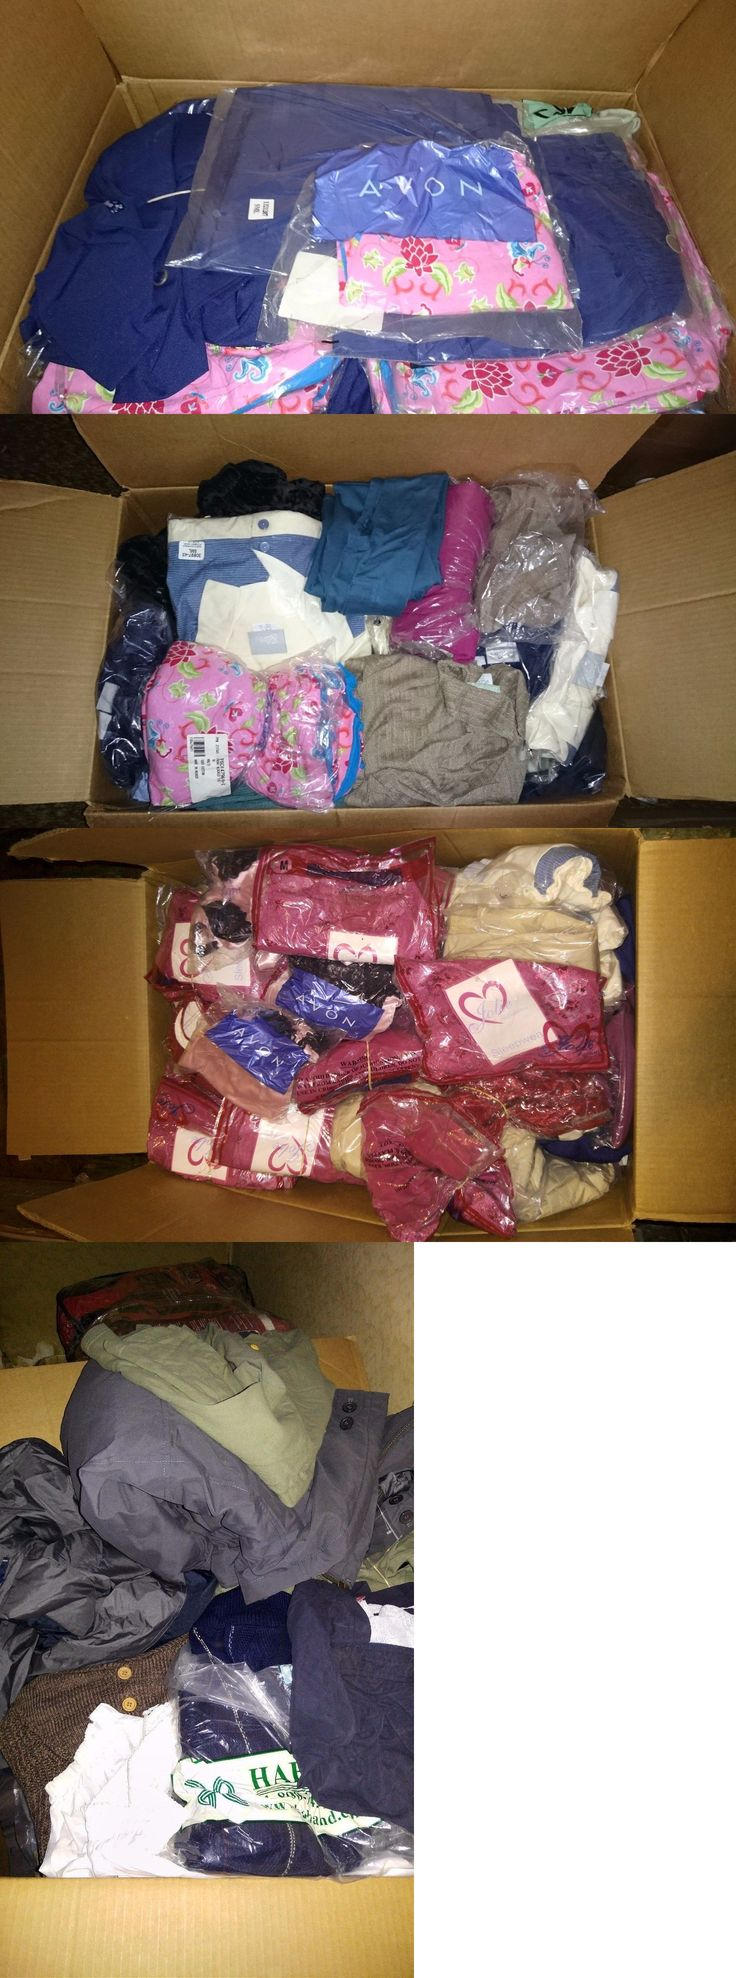 Mixed Lots 45057: Wholesale Pallet 2000 Brand New Woman Men Clothing Hand Bags Purses Coat -> BUY IT NOW ONLY: $999.99 on eBay!